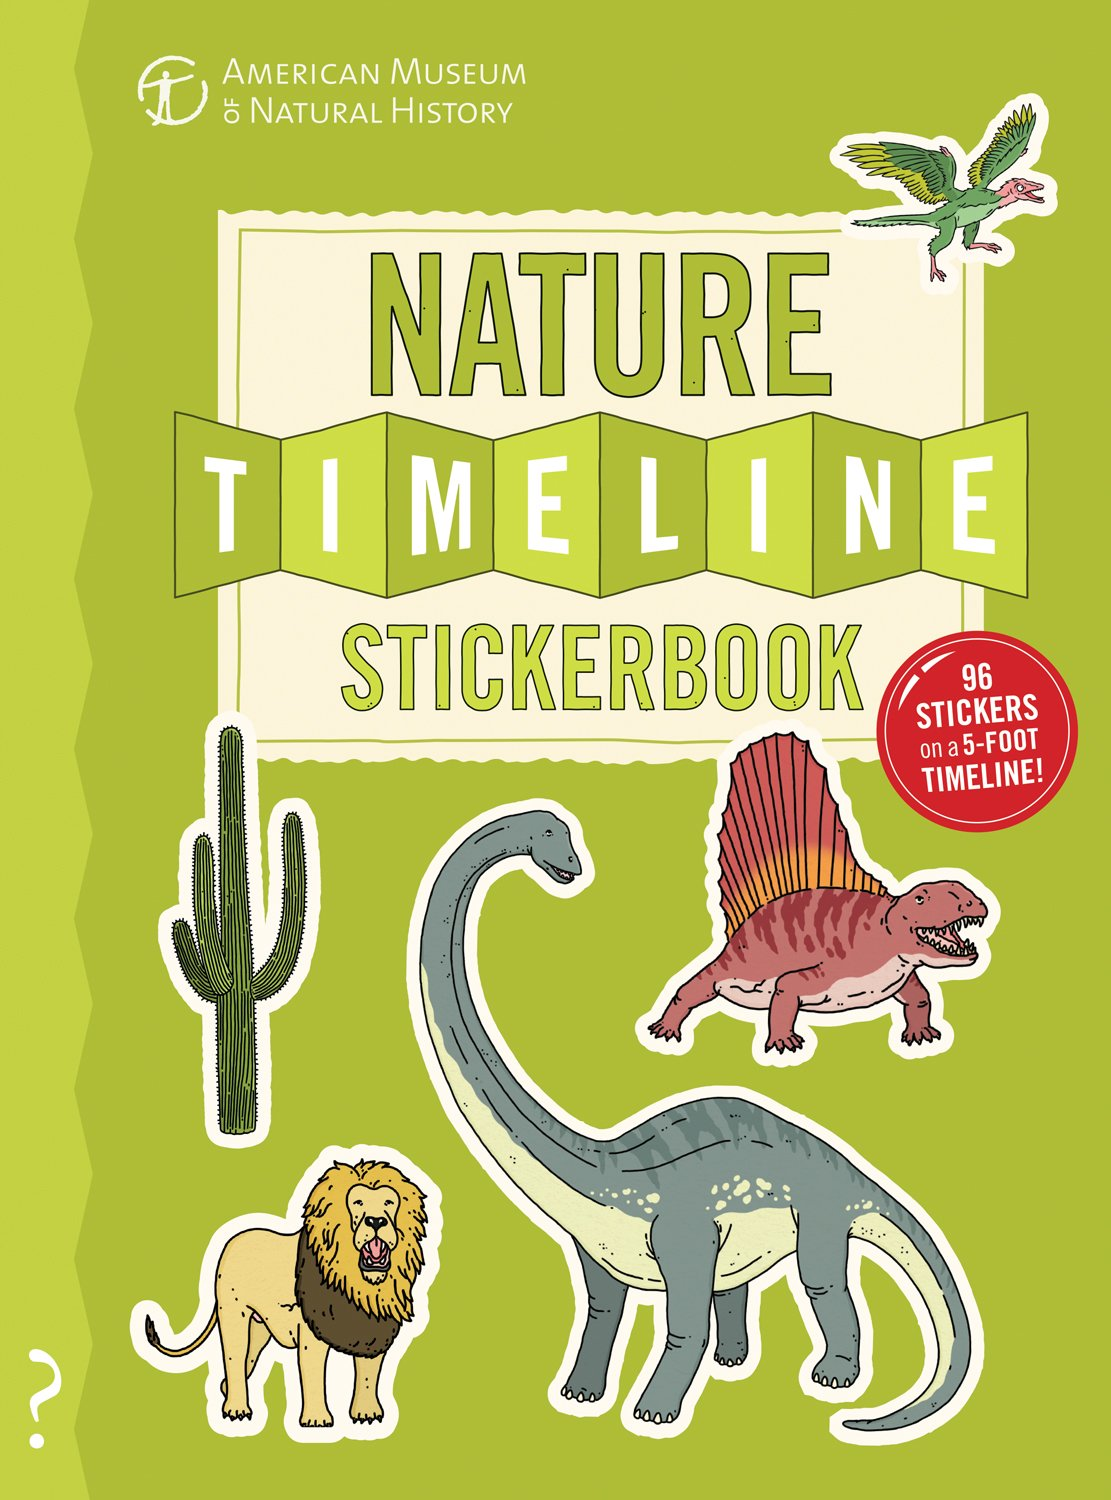 The Nature Timeline Stickerbook From bacteria to humanity the story of life on Earth in one epic timeline!